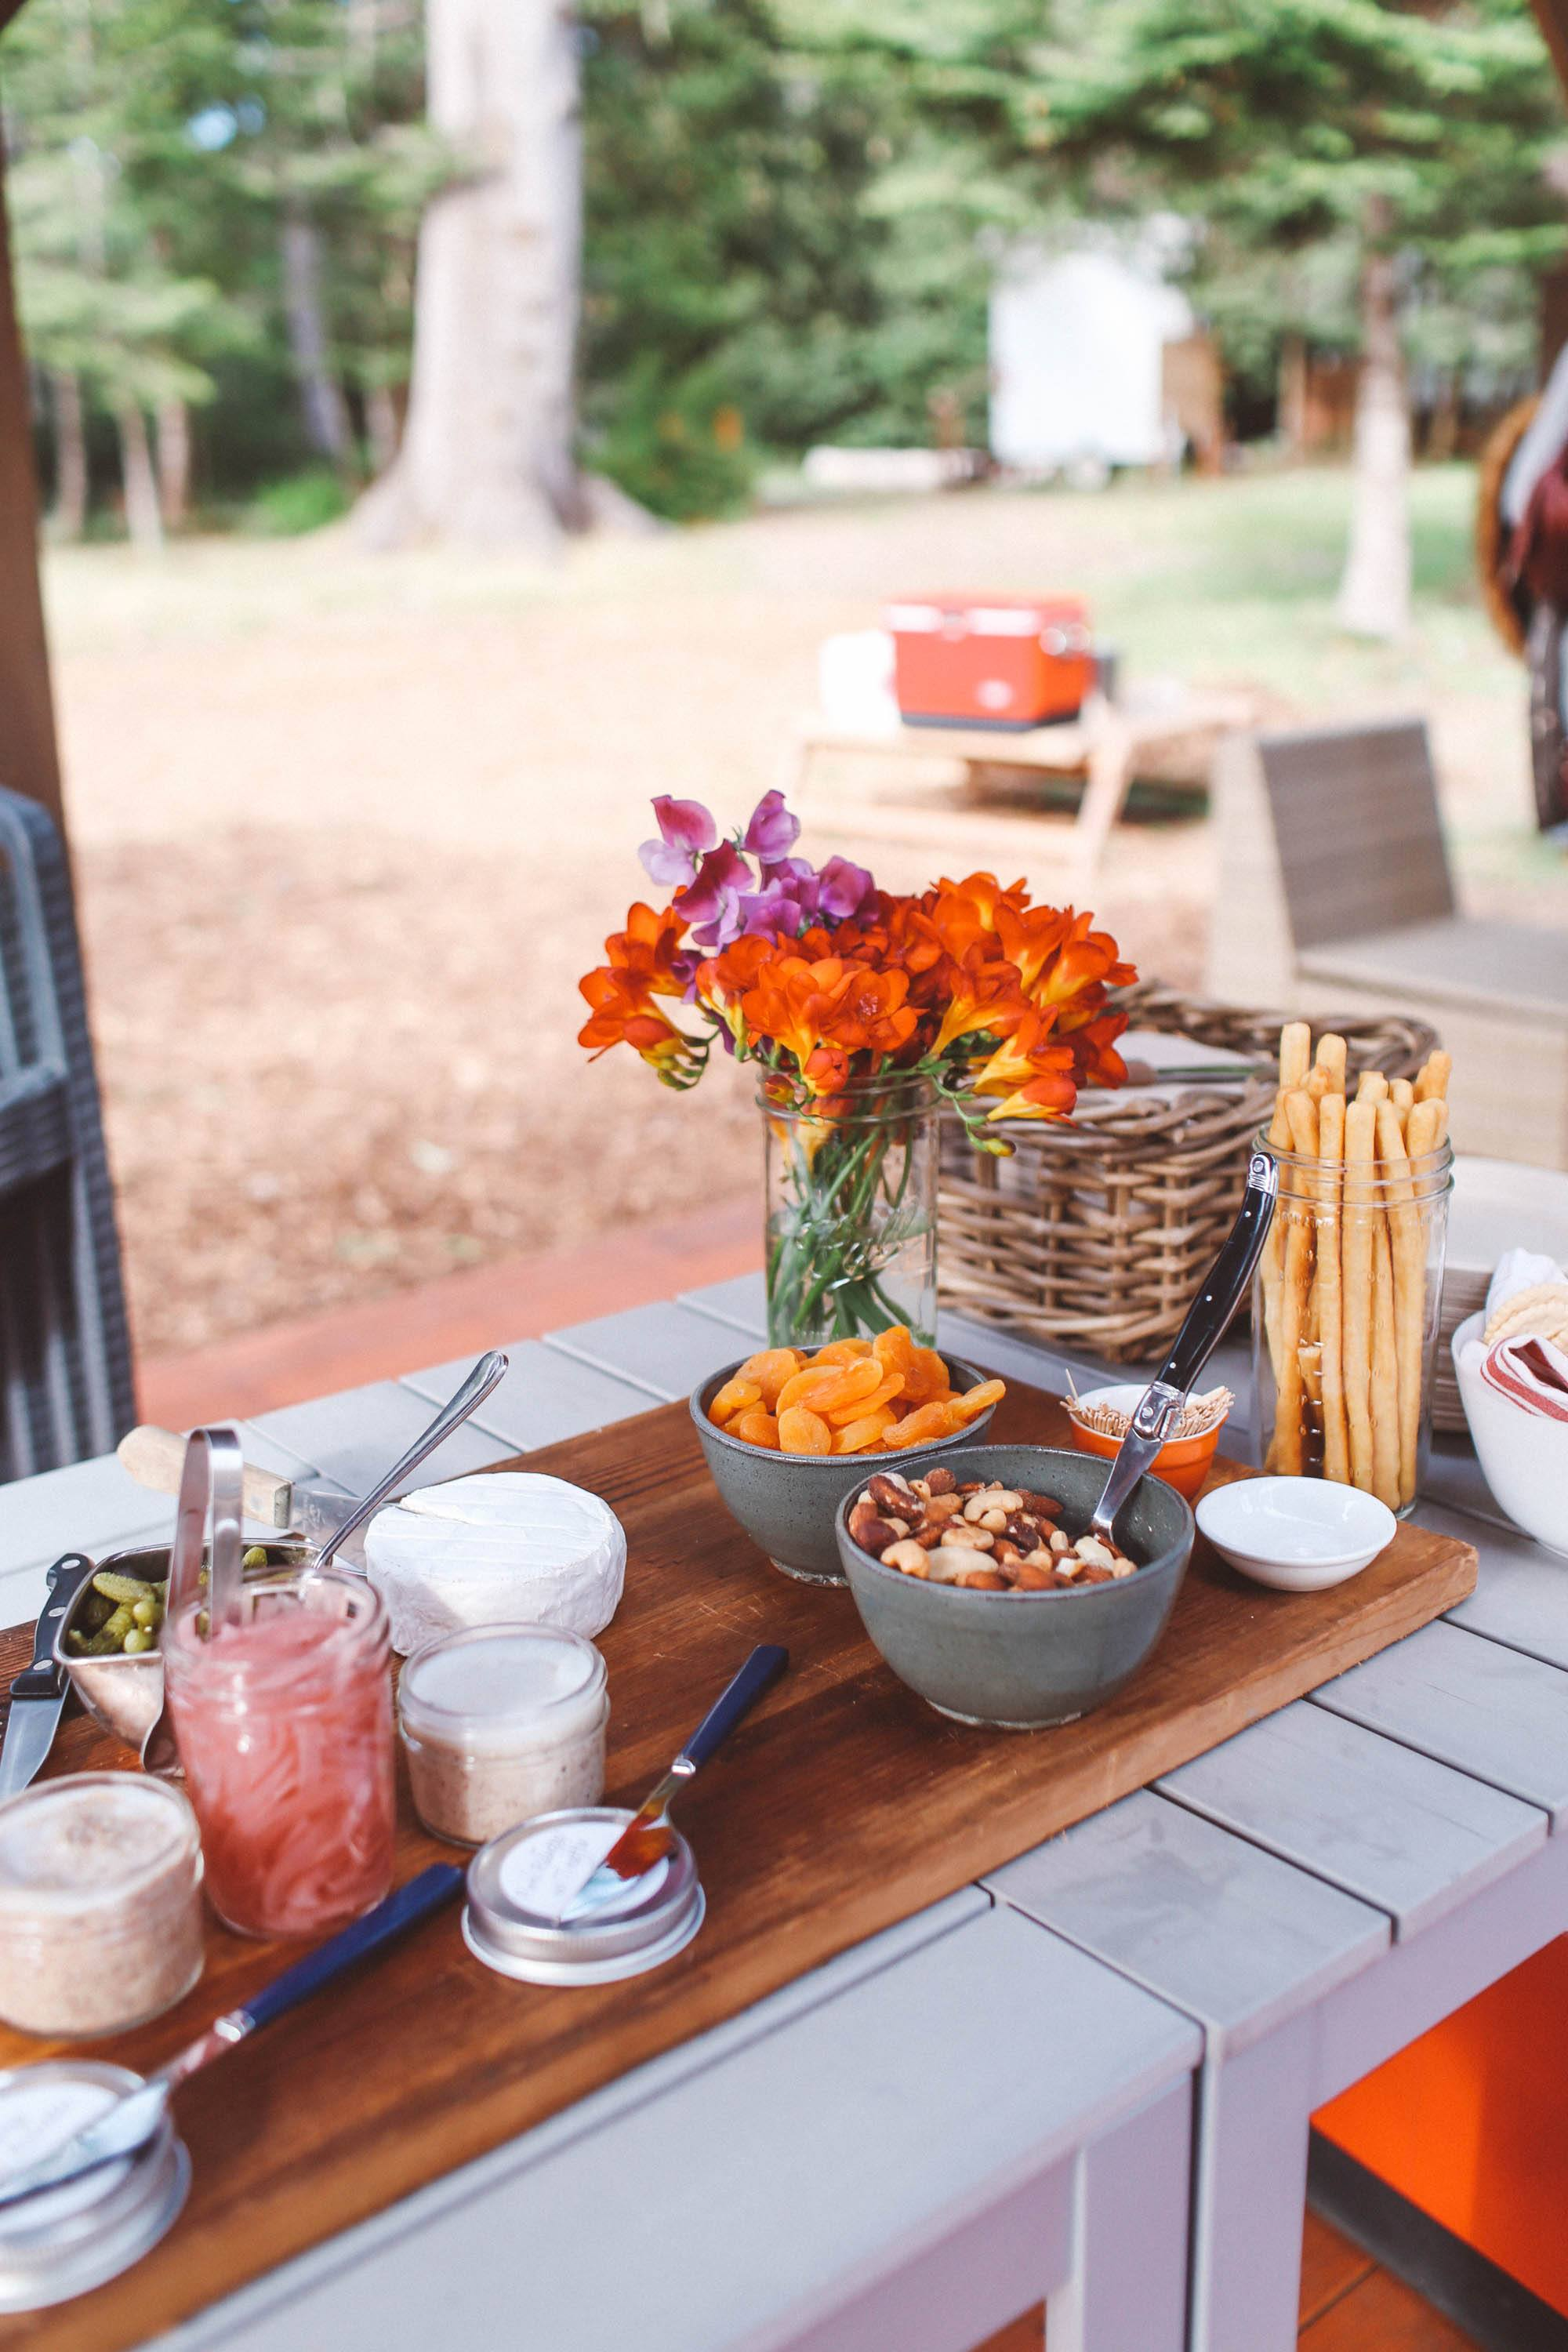 Continental breakfast set up on a table